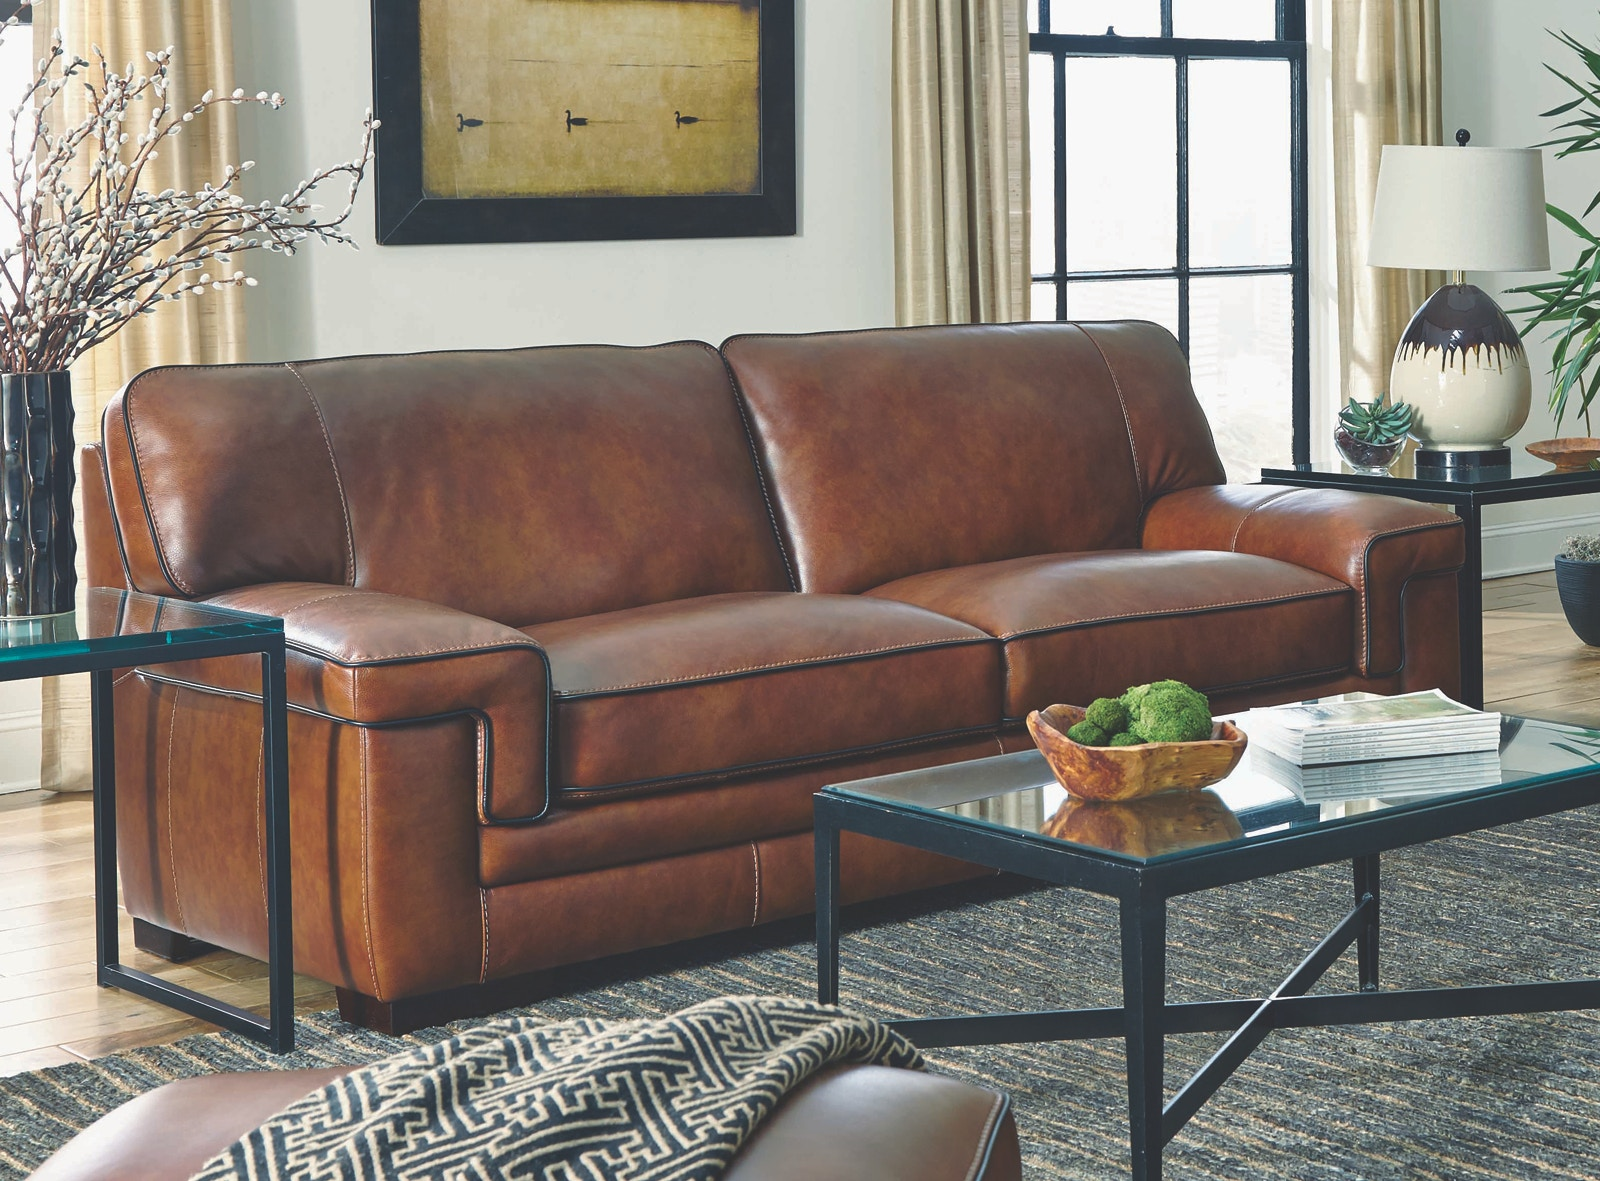 types of living room furniture. 044358. Chestnut Leather Sofa Types Of Living Room Furniture Y